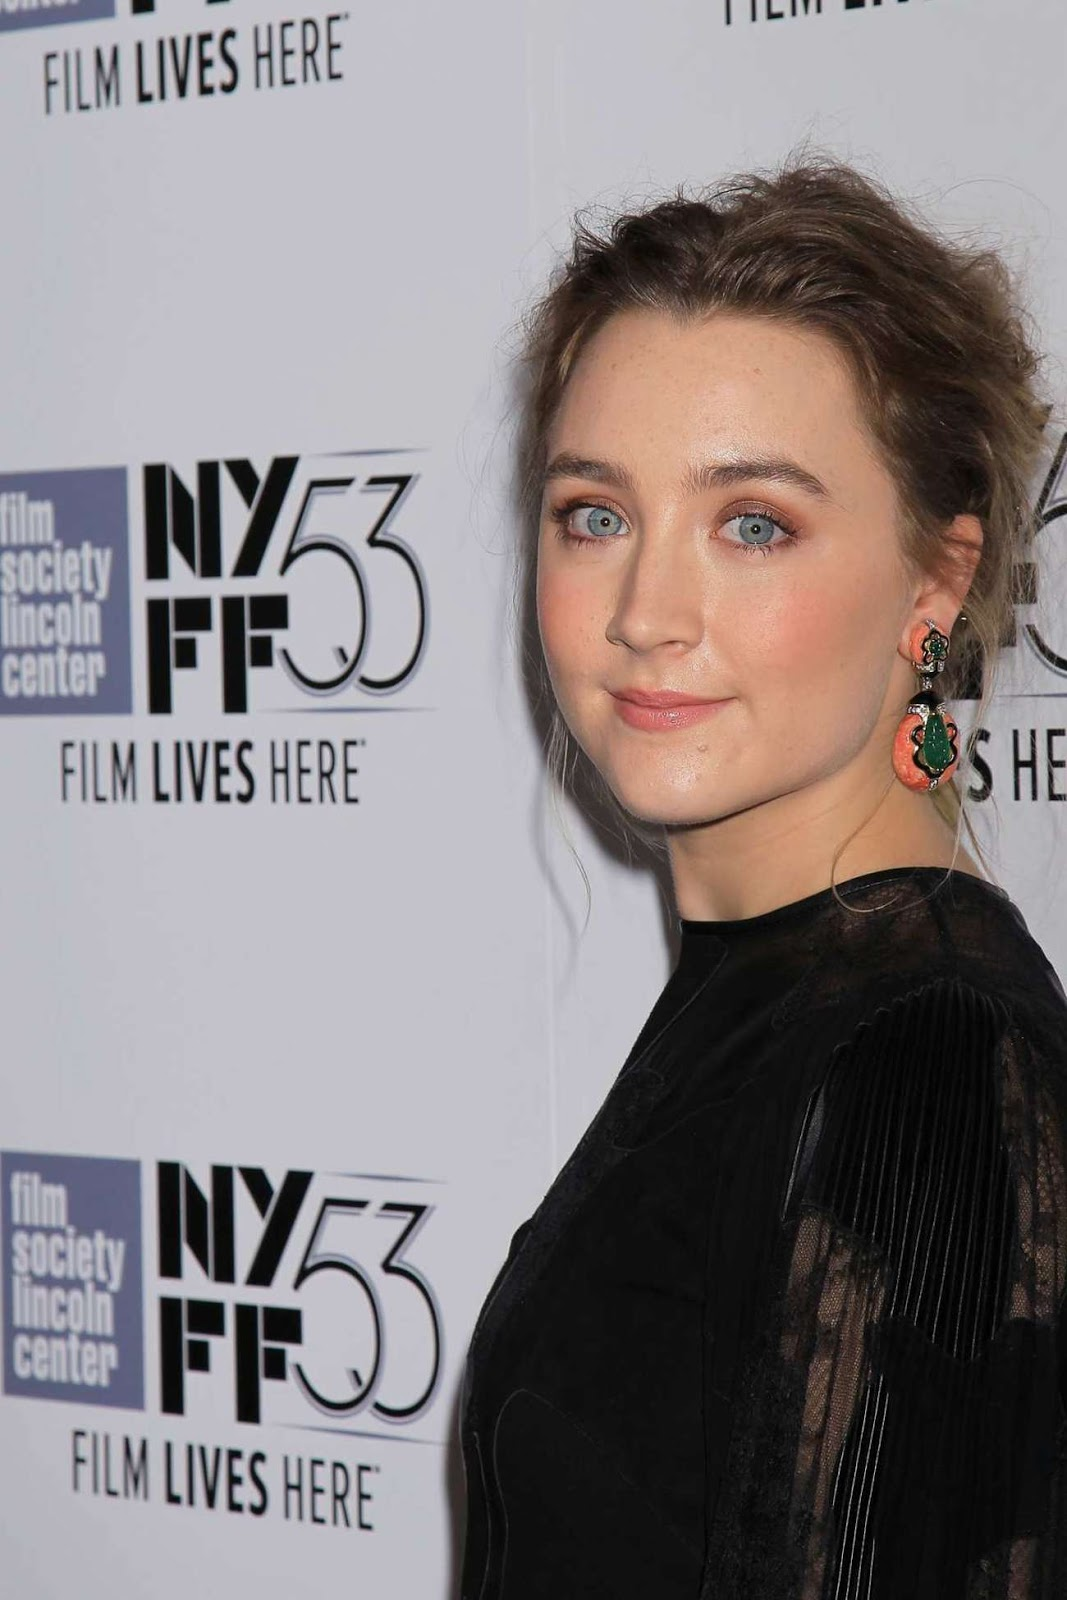 Brooklyn actress Saoirse Una Ronan Full HD Images, Photo & Wallpapers